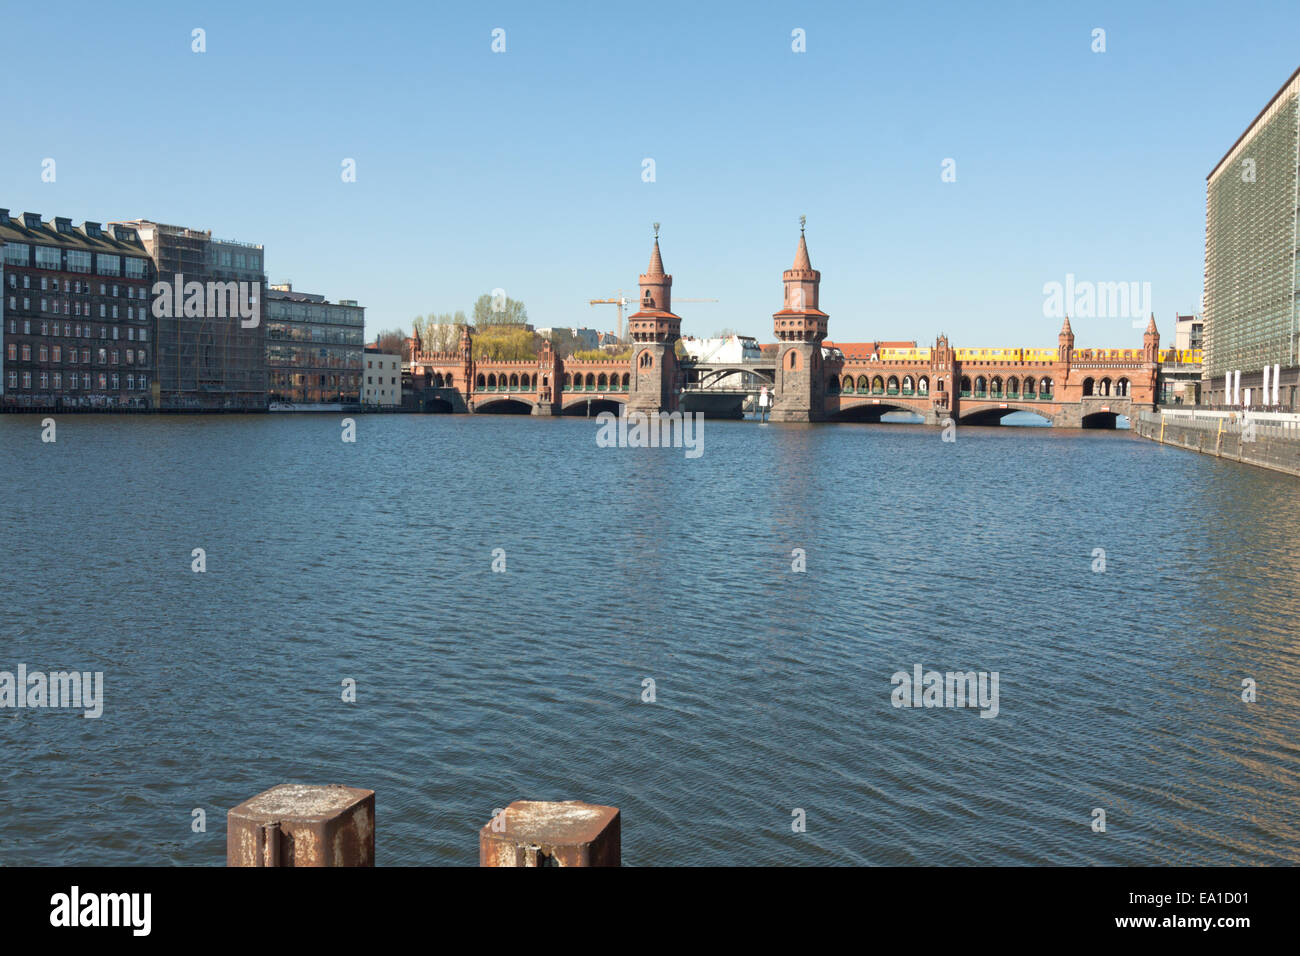 Oberbaumbrucke centered - Stock Image